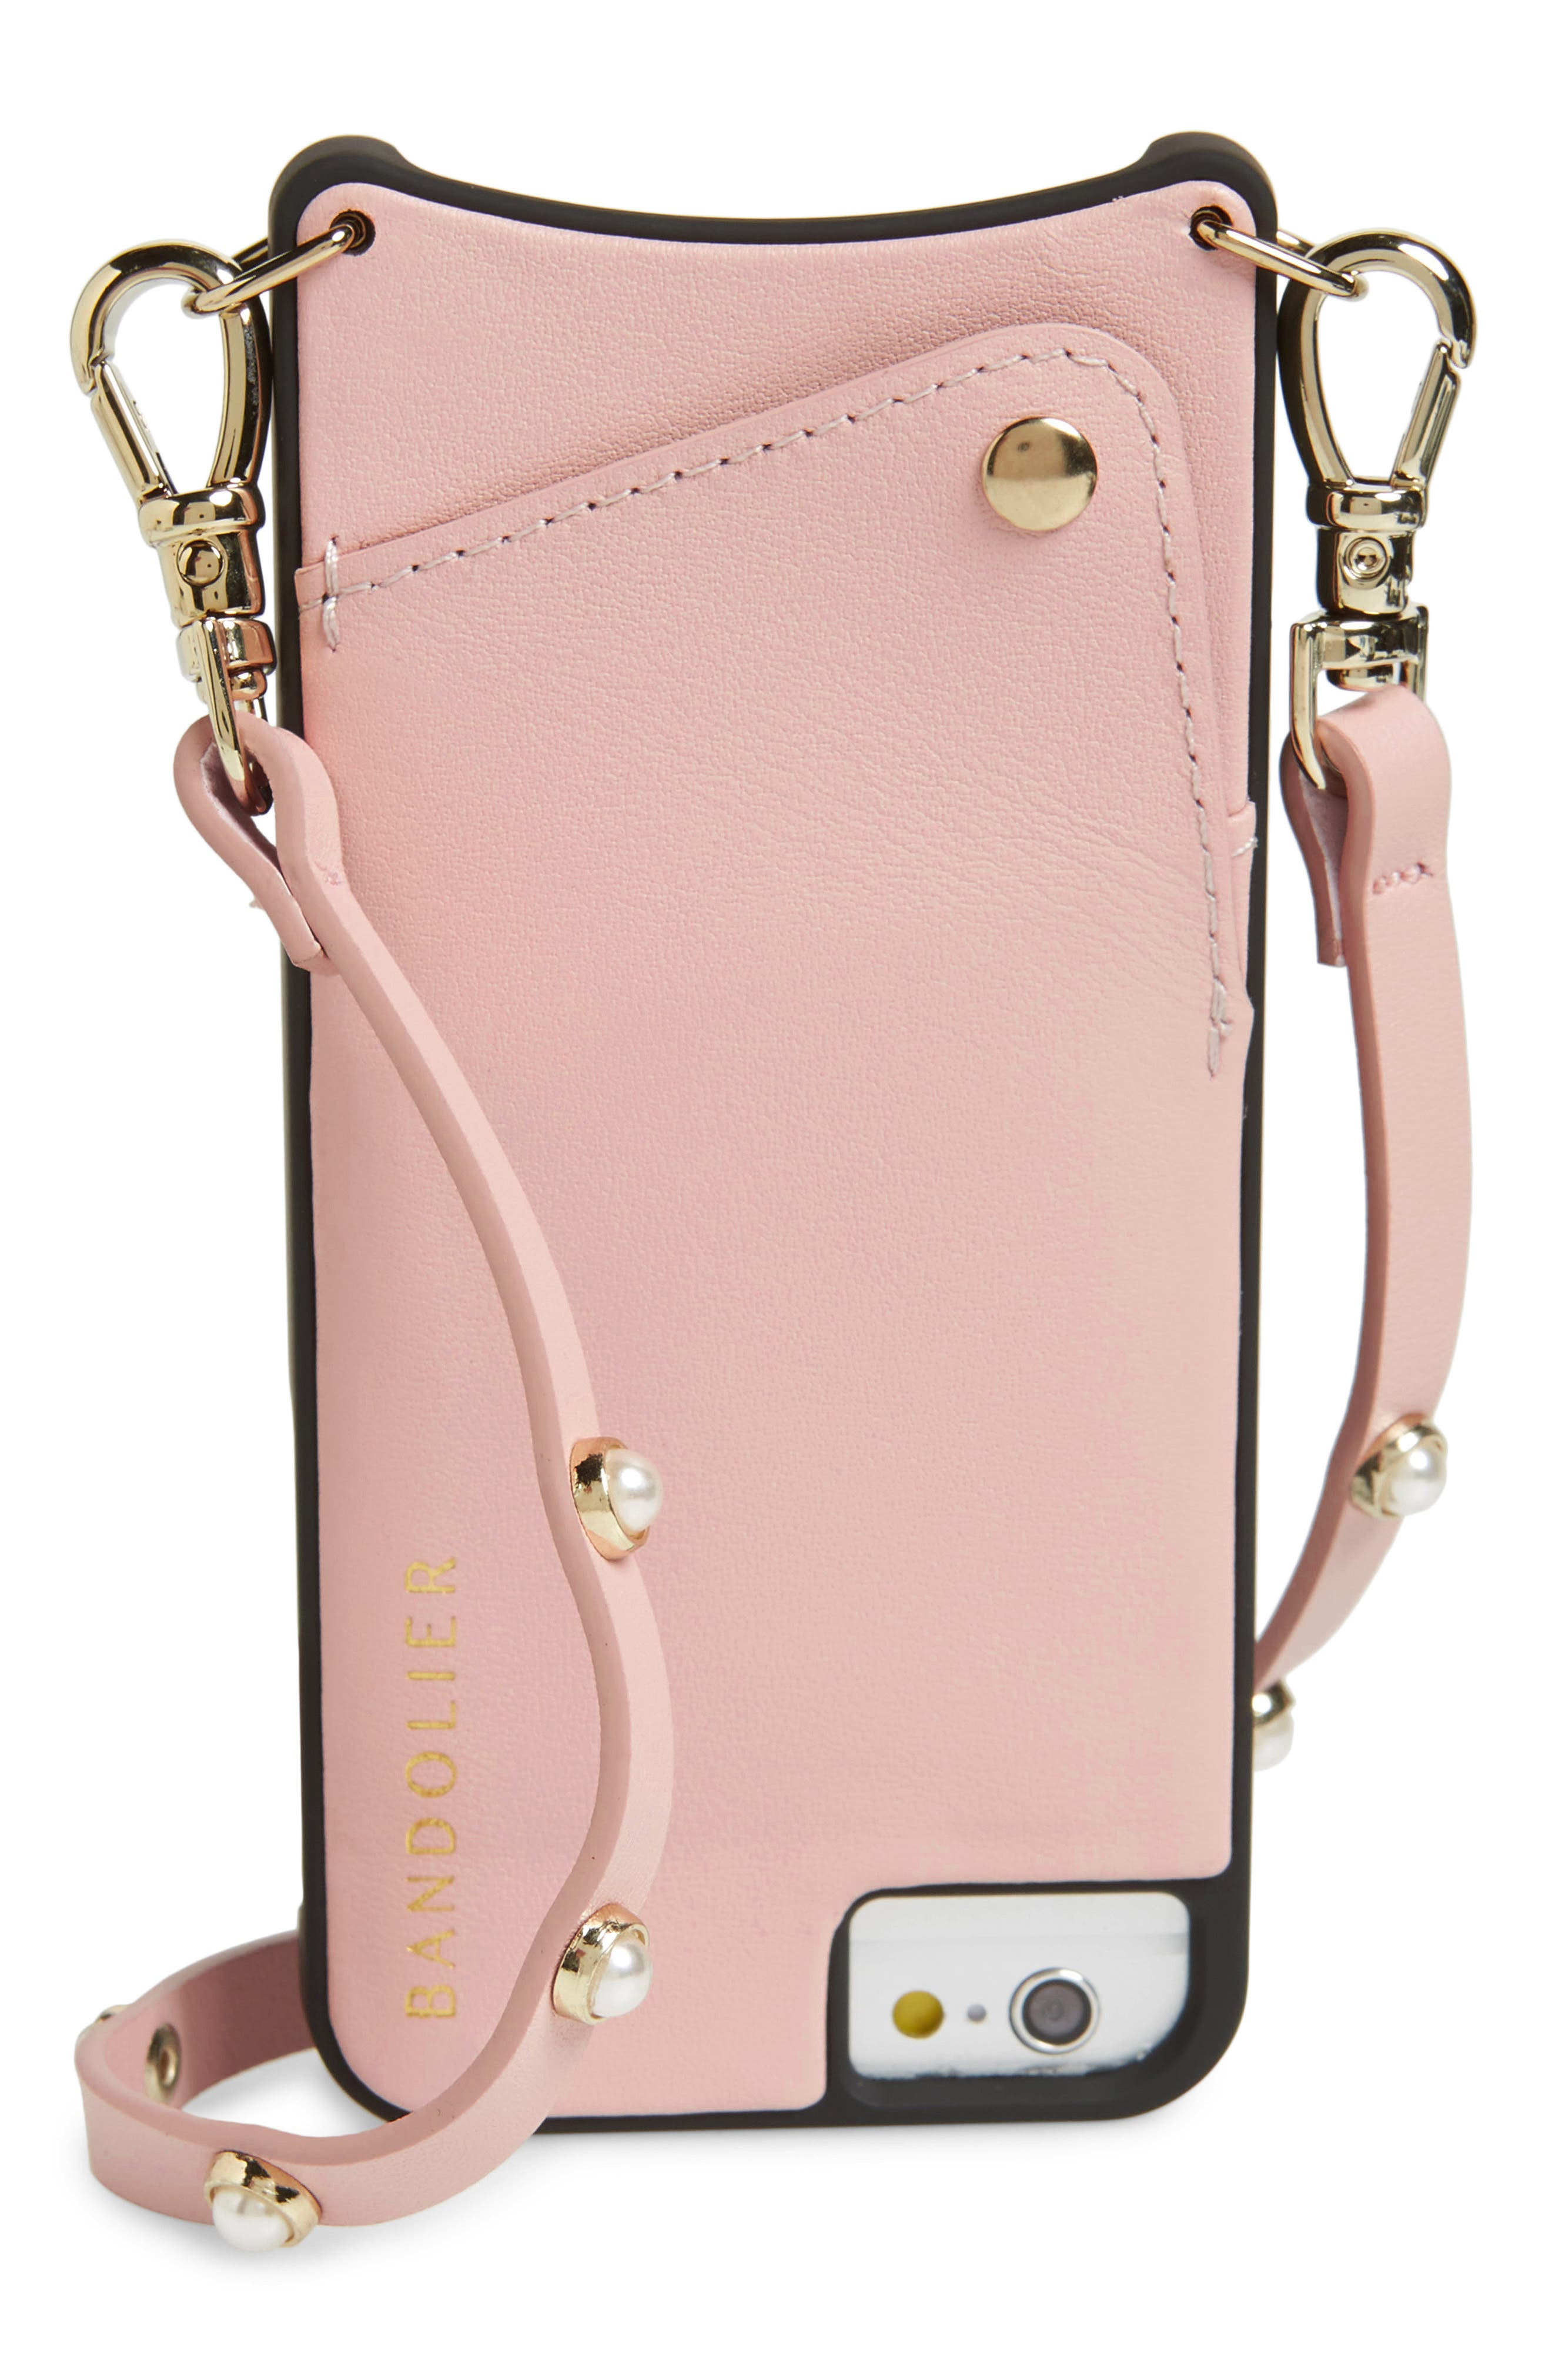 Bandolier Claire Leather iPhone 7/8 & 7/8 Plus Crossbody Case